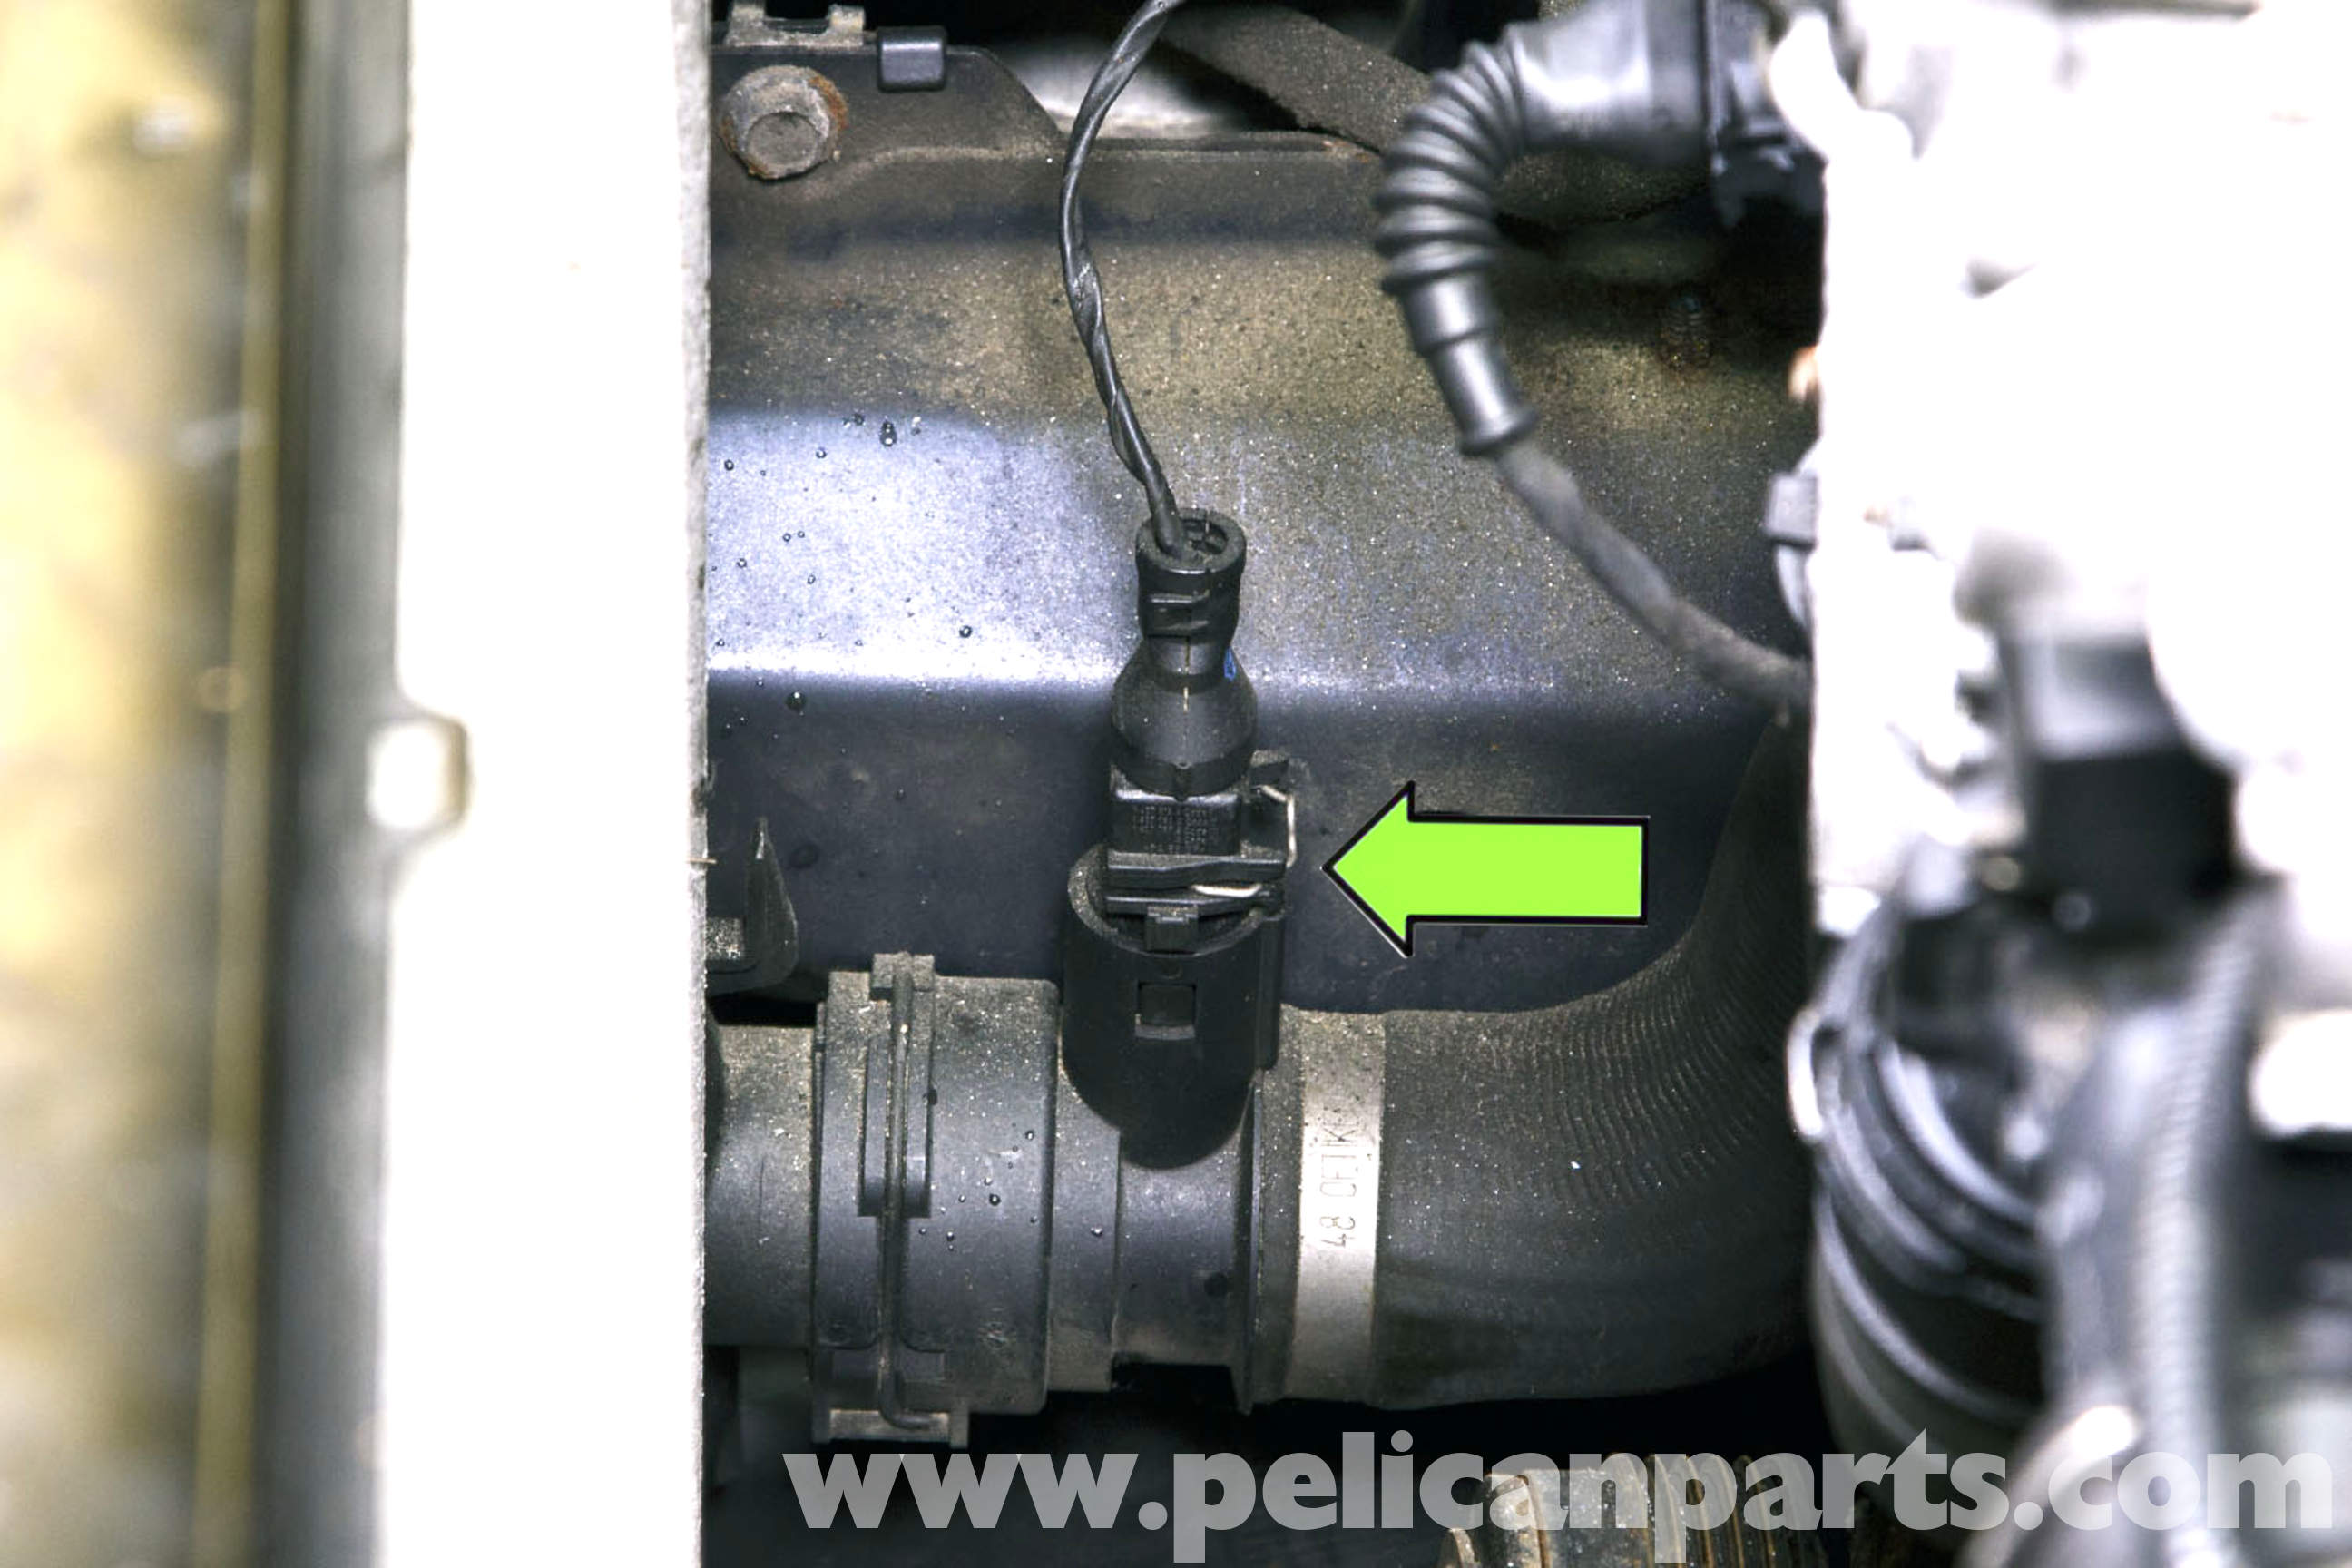 pic01 bmw e46 radiator outlet temperature sensor replacement bmw 325i e46 sensor diagram at alyssarenee.co